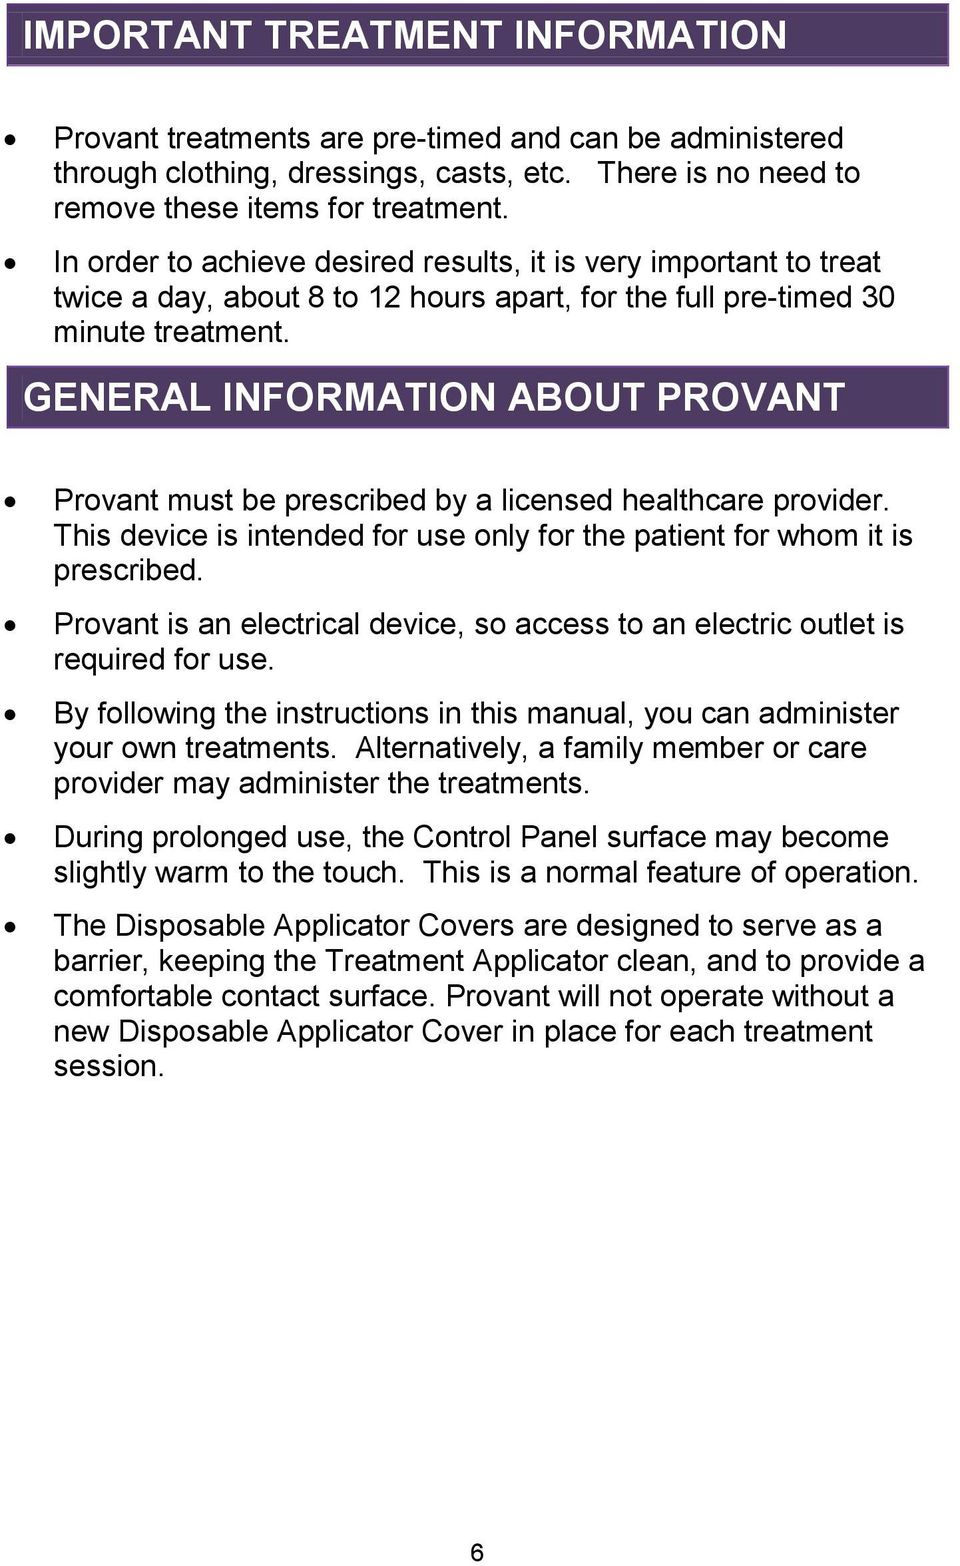 GENERAL INFORMATION ABOUT PROVANT Provant must be prescribed by a licensed healthcare provider. This device is intended for use only for the patient for whom it is prescribed.